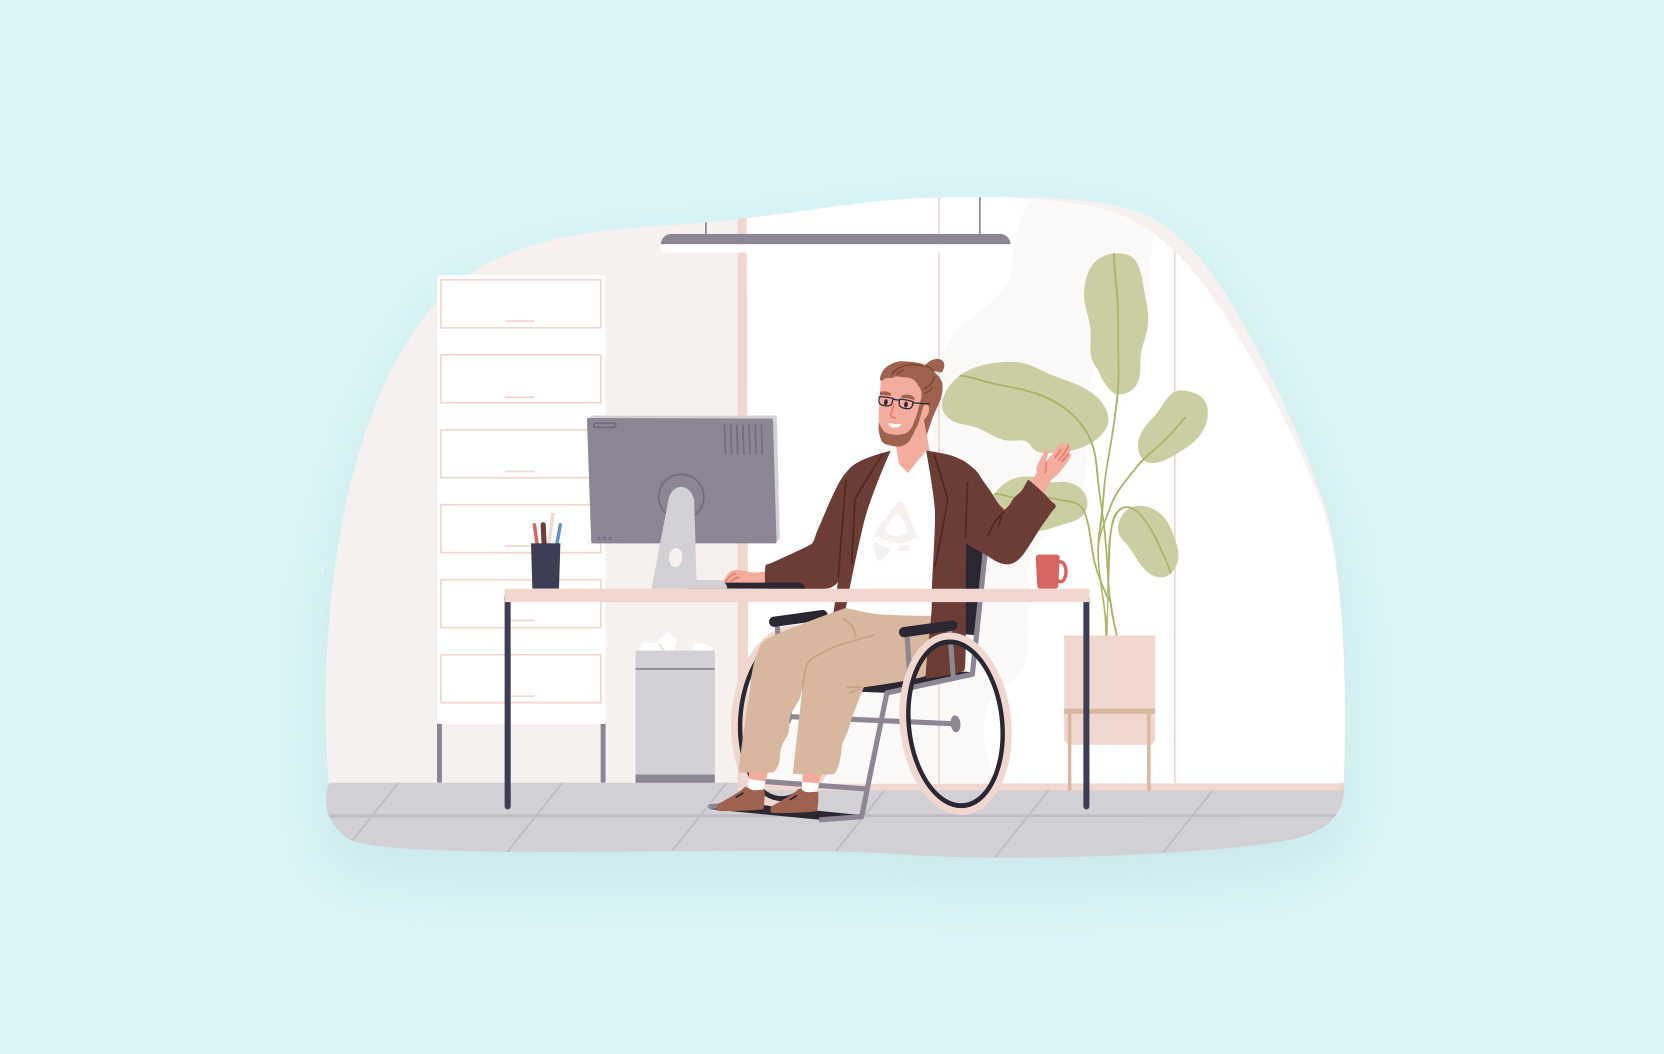 Illustration of a person in a wheelchair sitting at a desk and waving at a computer.